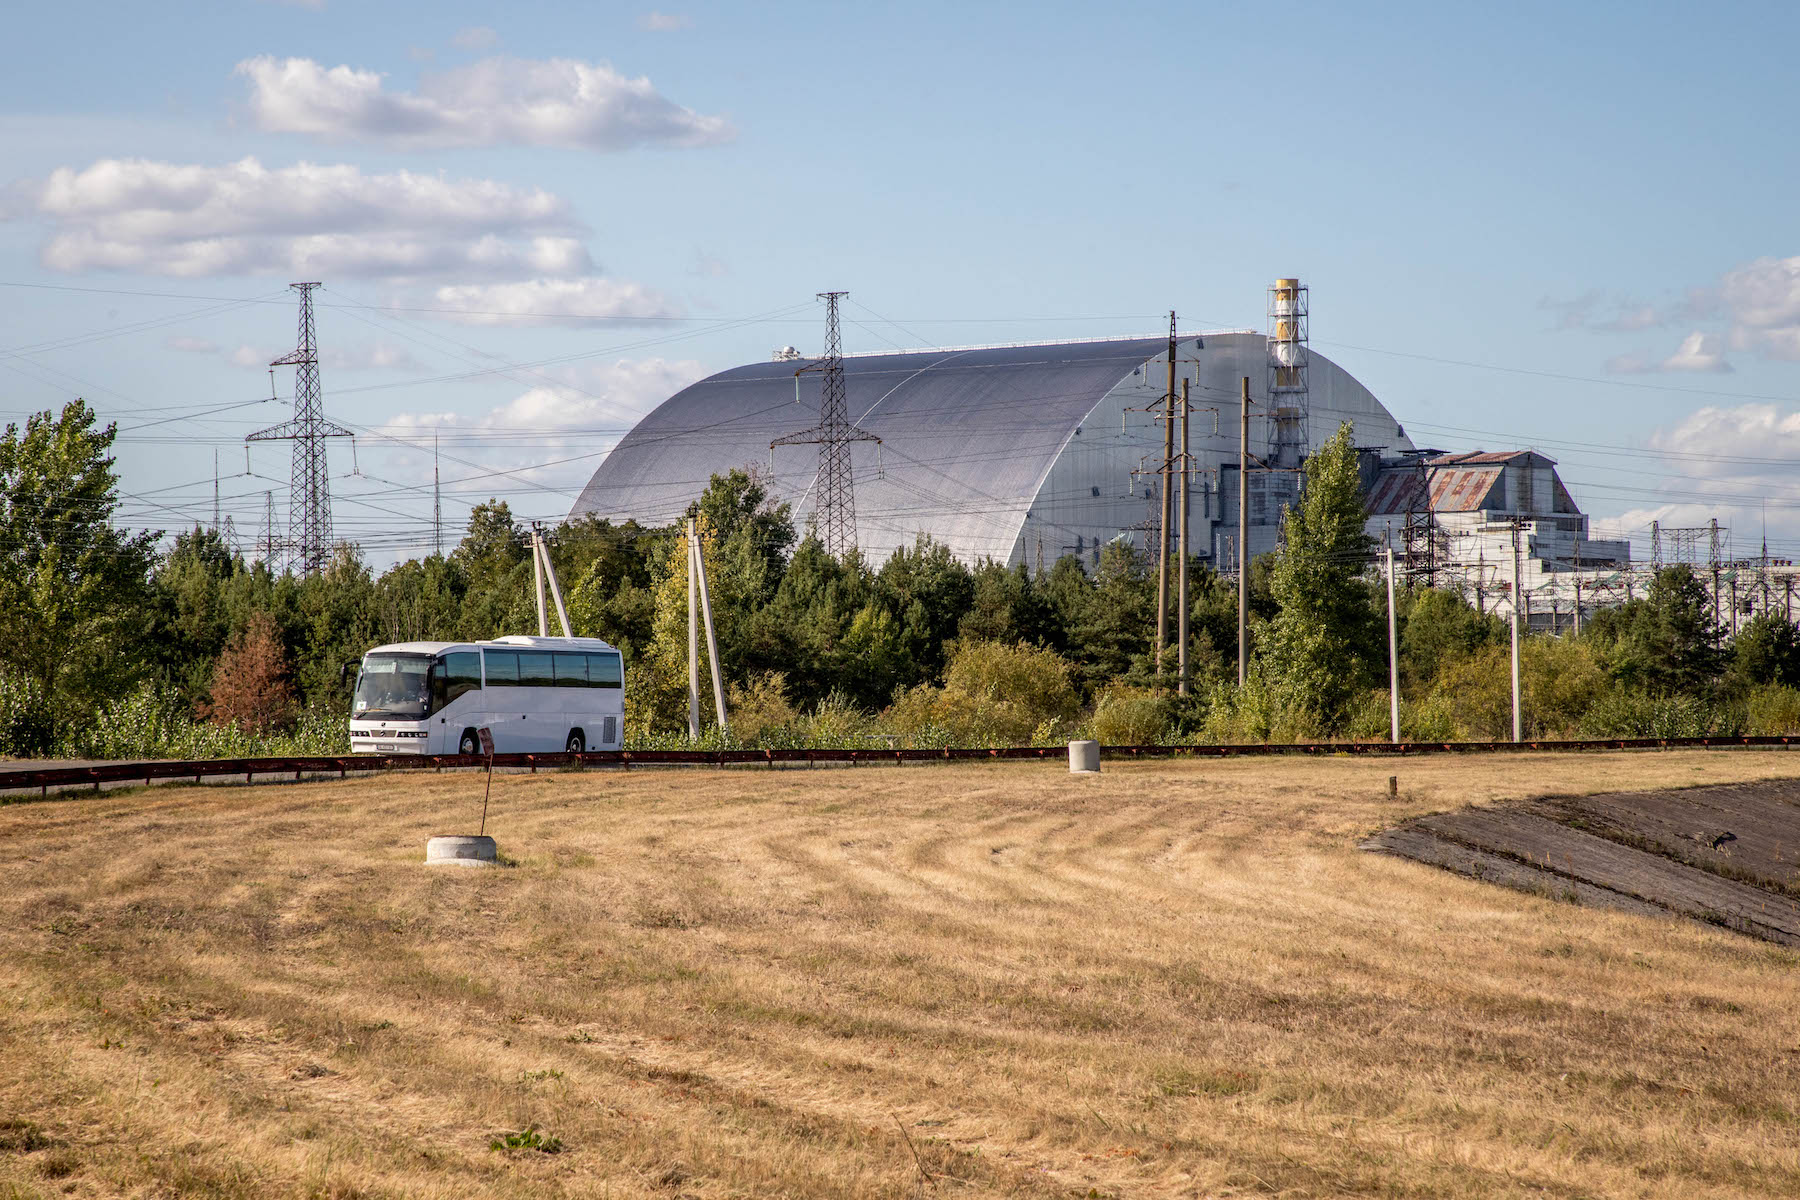 The New Safe Confinement structure installed over the destroyed Reactor 4 at the Chernobyl Nuclear Power Plant. A barrow of the Atomic Age, it will dominate this landscape for a hundred years to come. © Darmon Richter